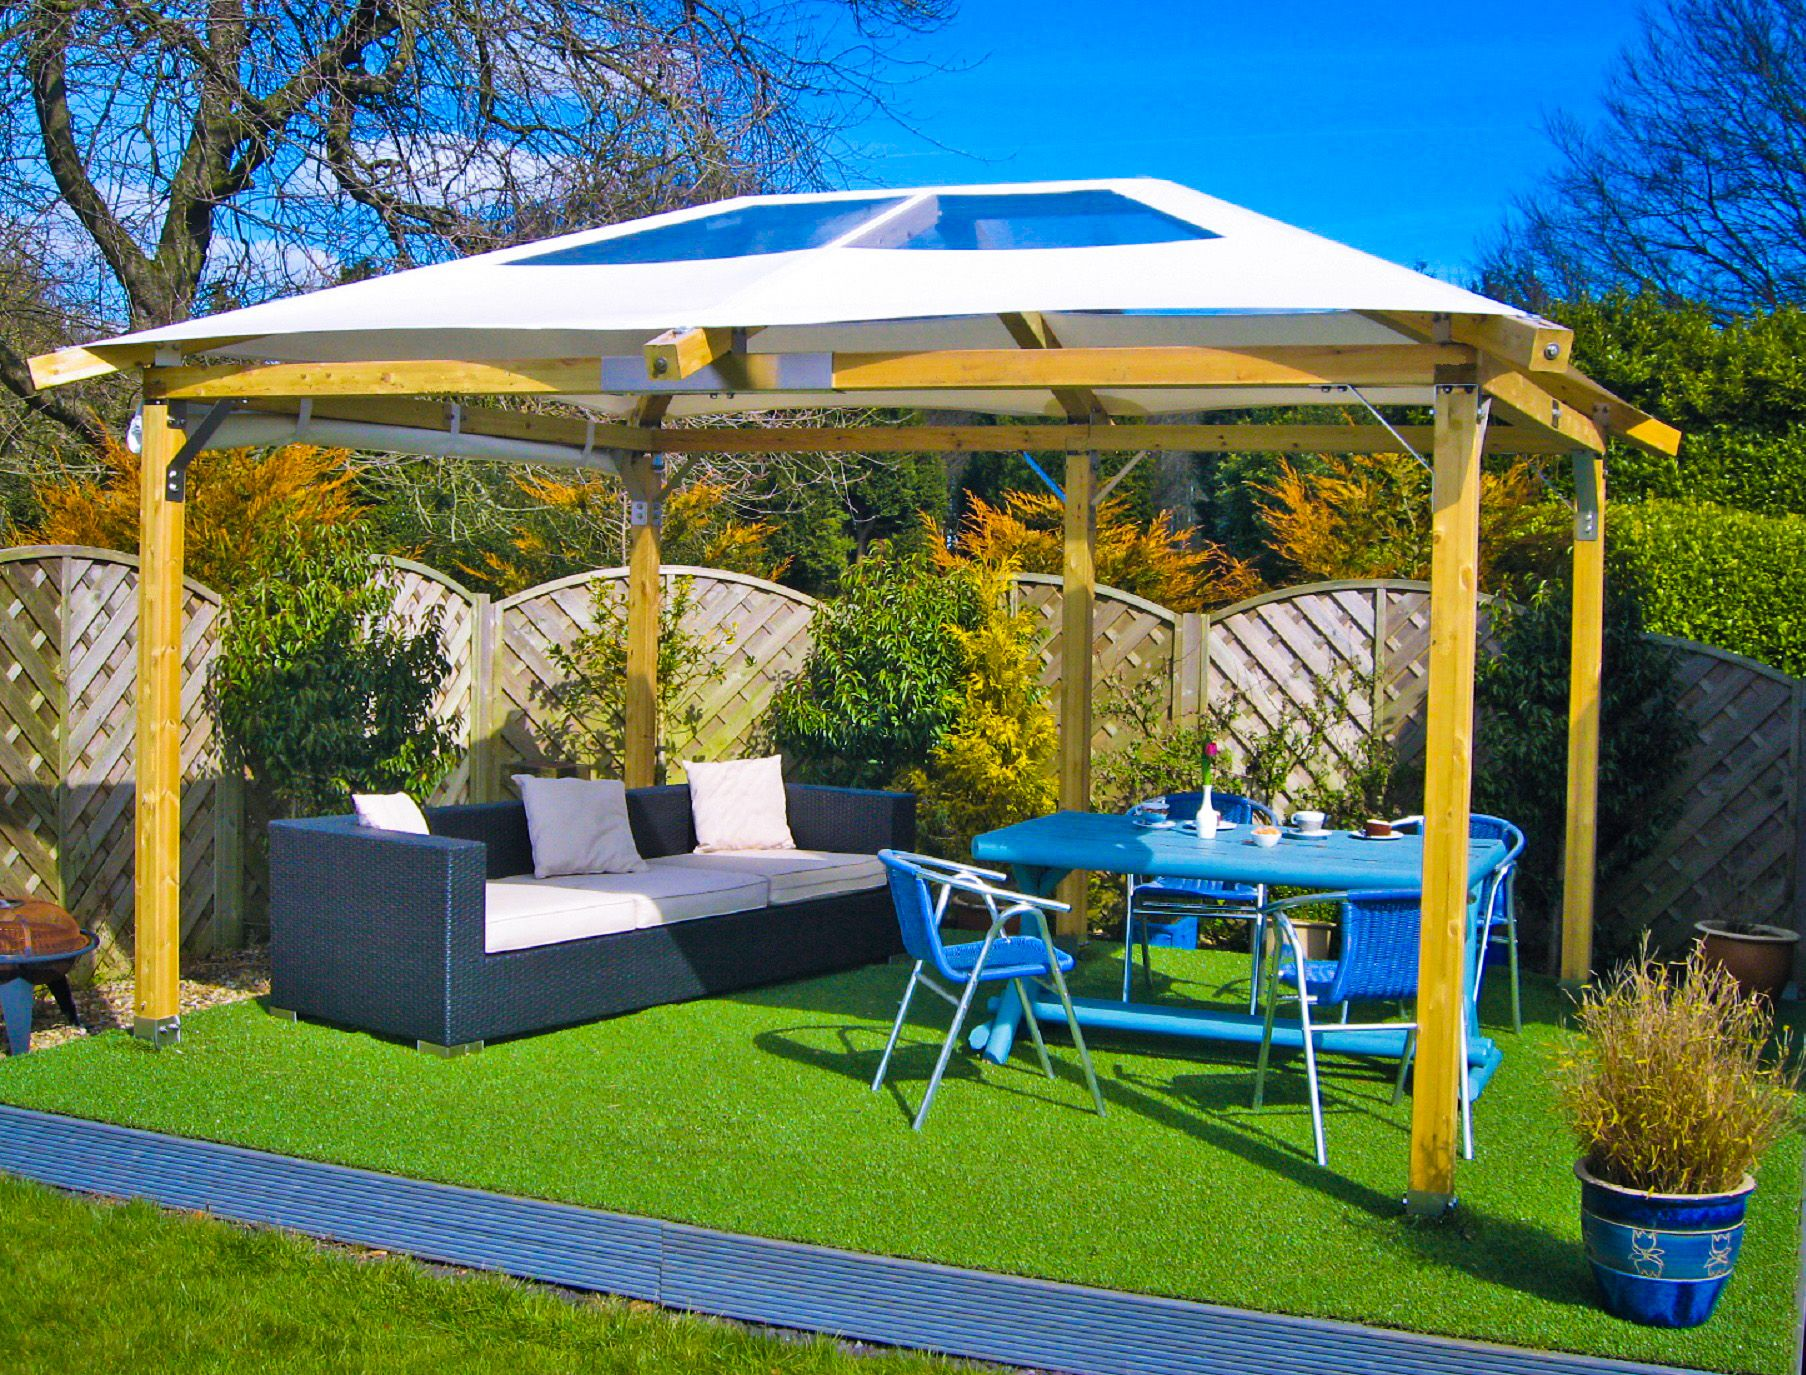 Pin By Tina Demers On Our New Home Gazebo Canopy Canopy Outdoor